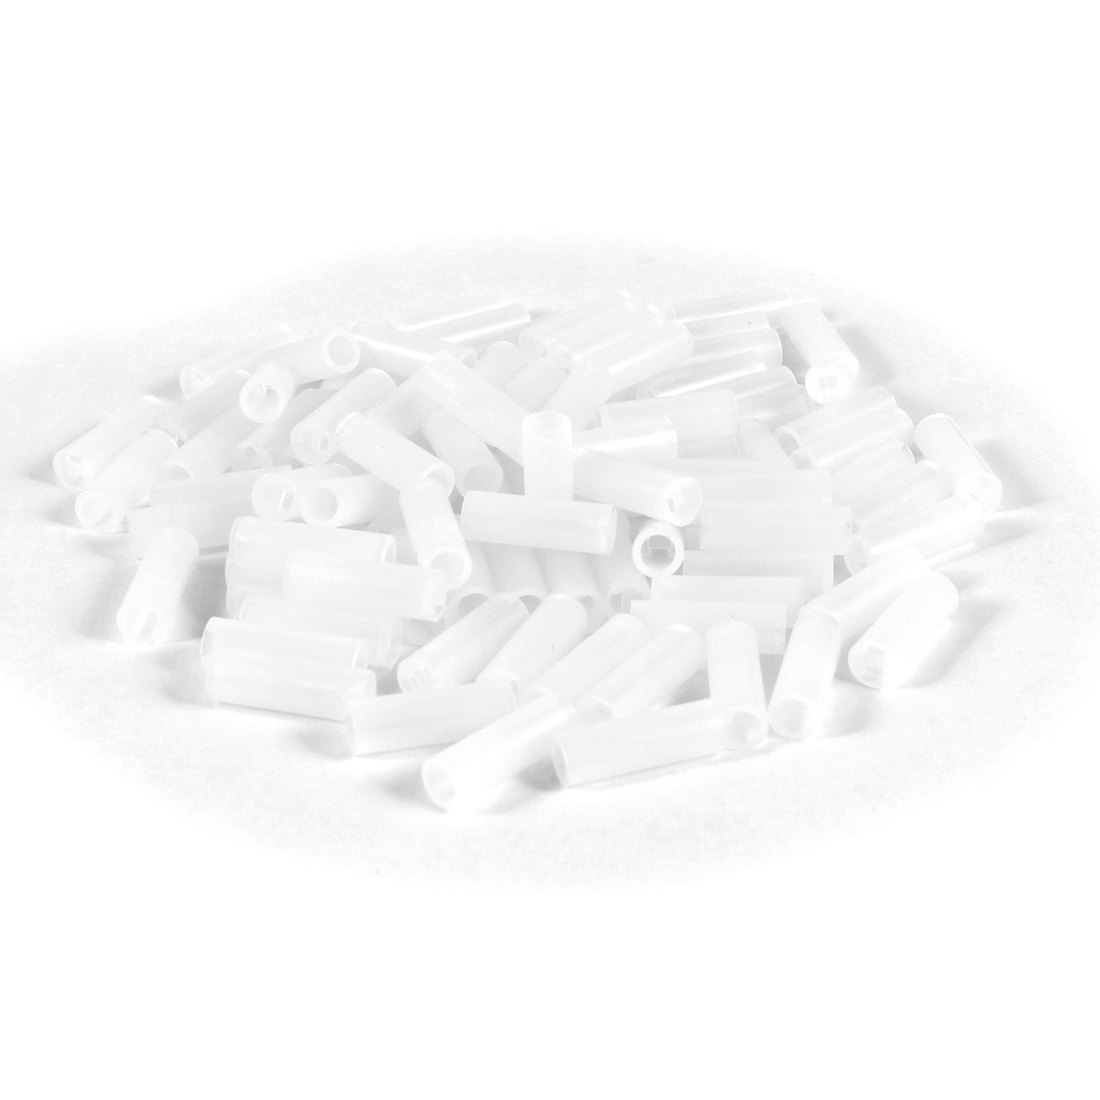 100 Pcs 5mmx15mm White Nylon 66 LED Spacer Supports Cylindrical for PC Board